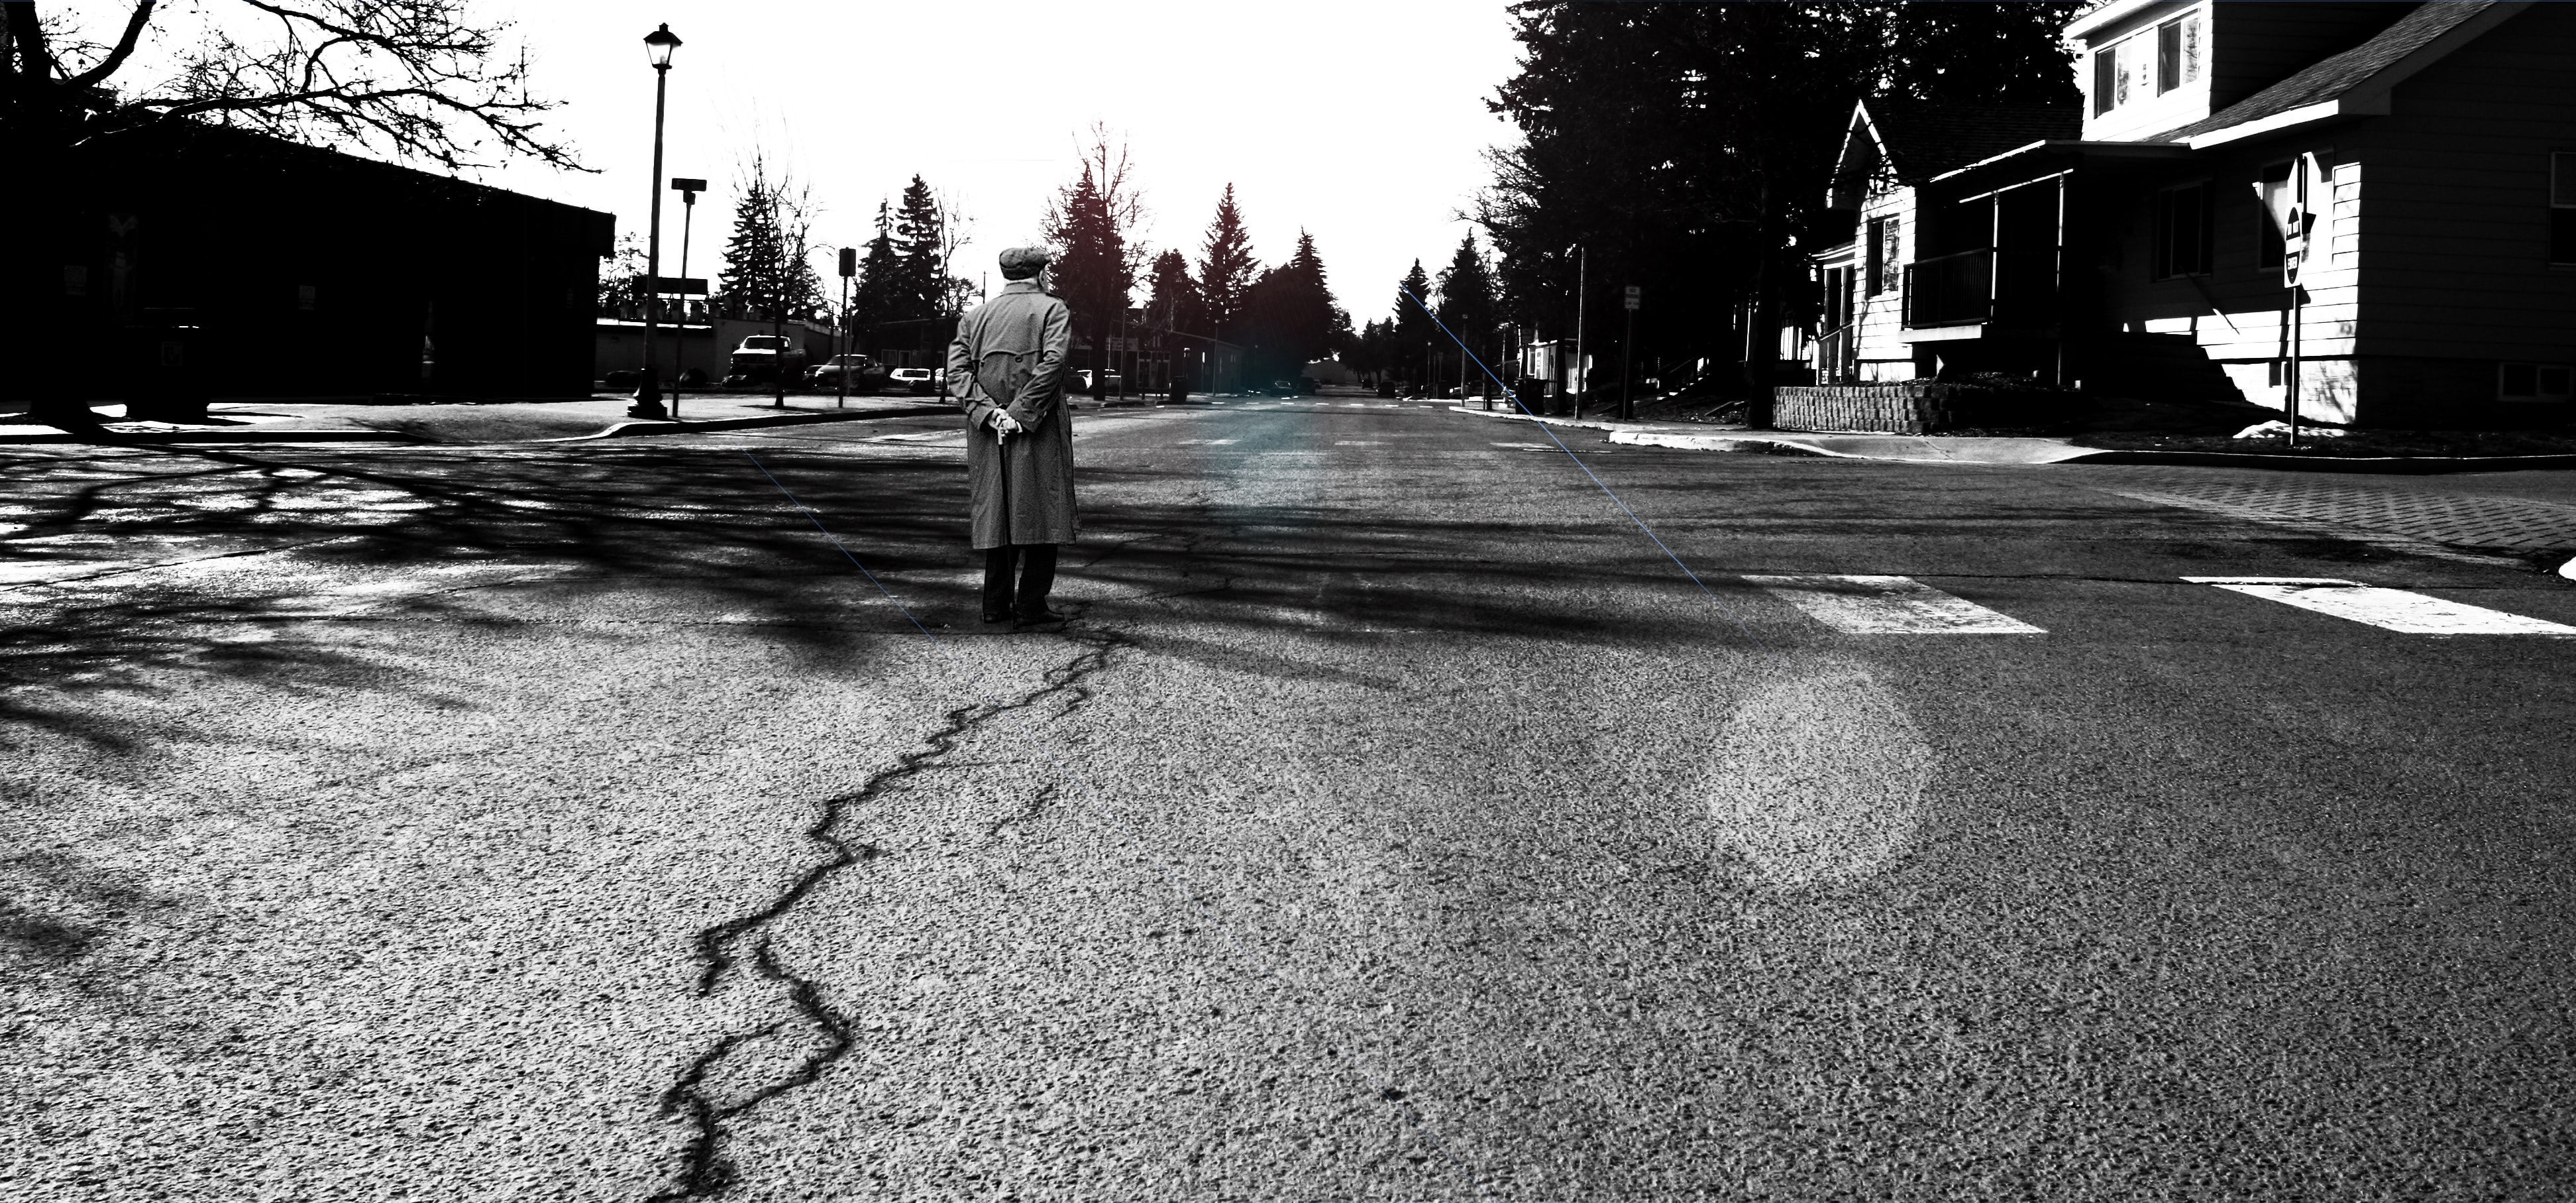 An elderly man walks in the middle of an old cracked street road with lamps and houses.